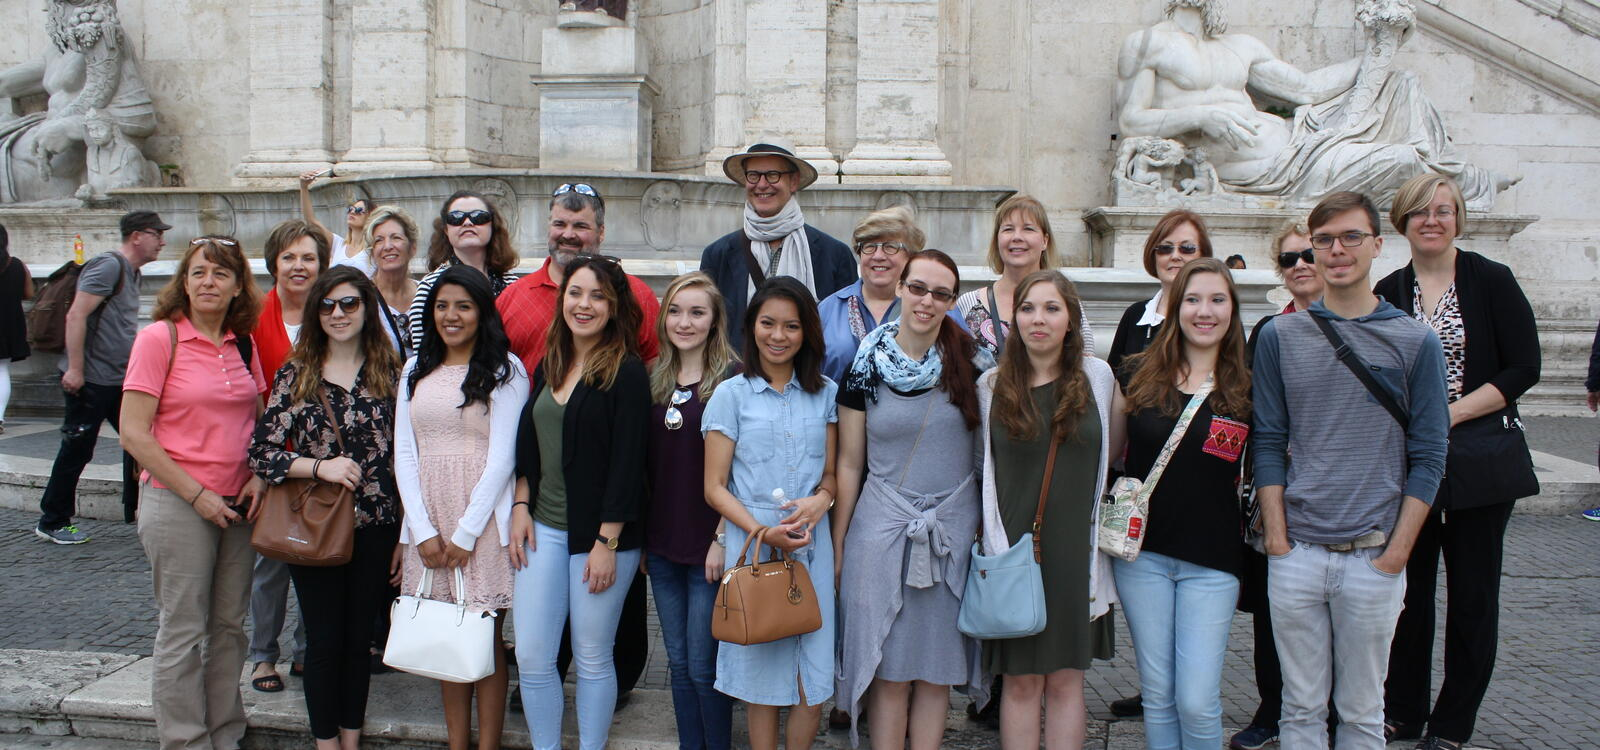 Students from the Honors Program smile as they stand in front of statues of greek mythology